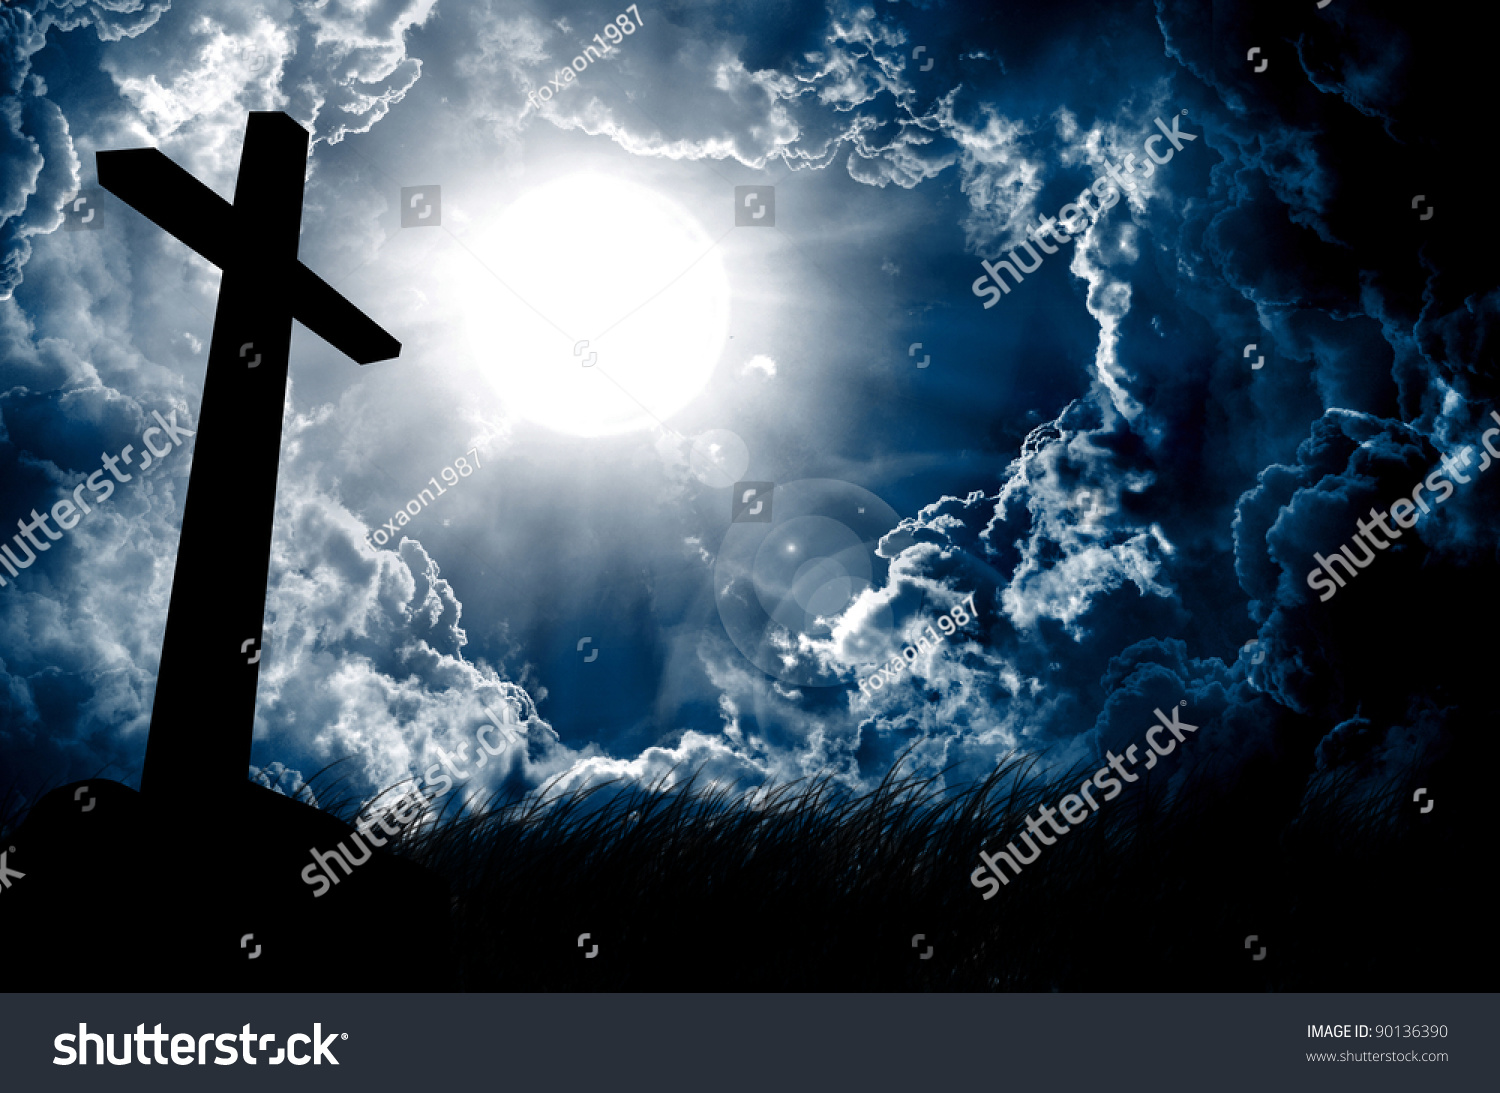 Silhouette of the holy cross on background of storm clouds stock - Cross Silhouette And The Sky With Full Moon